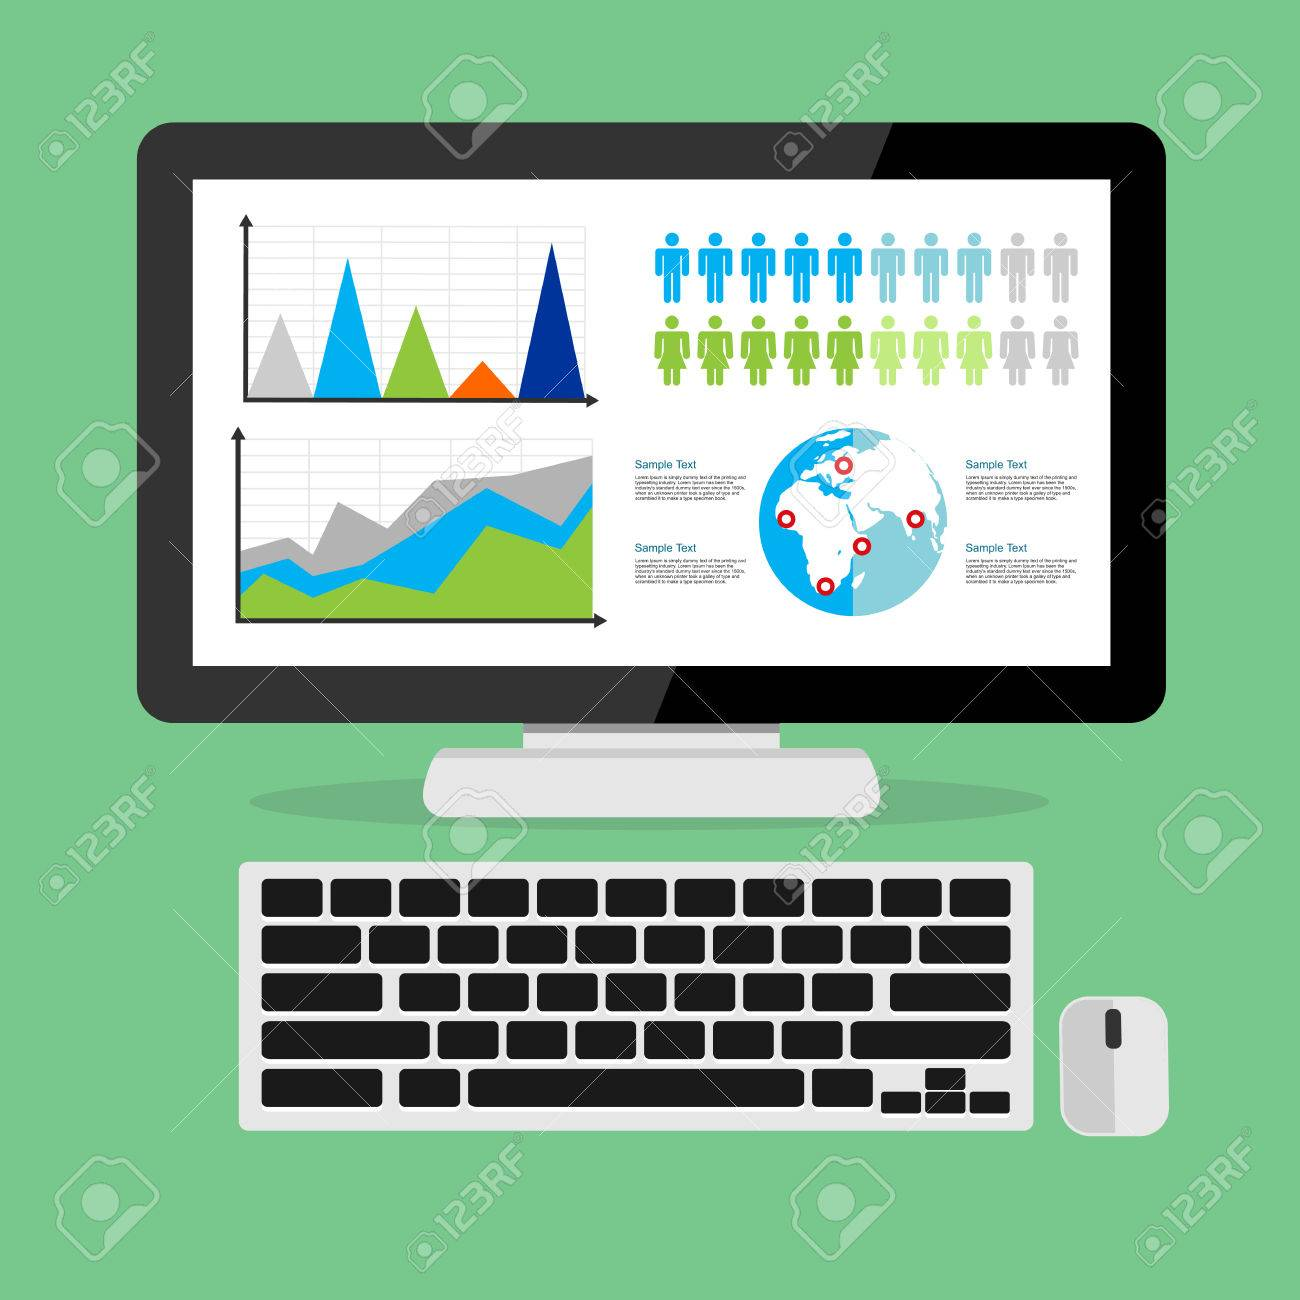 Web analytic showing business growth graph concept illustration. - 44827979